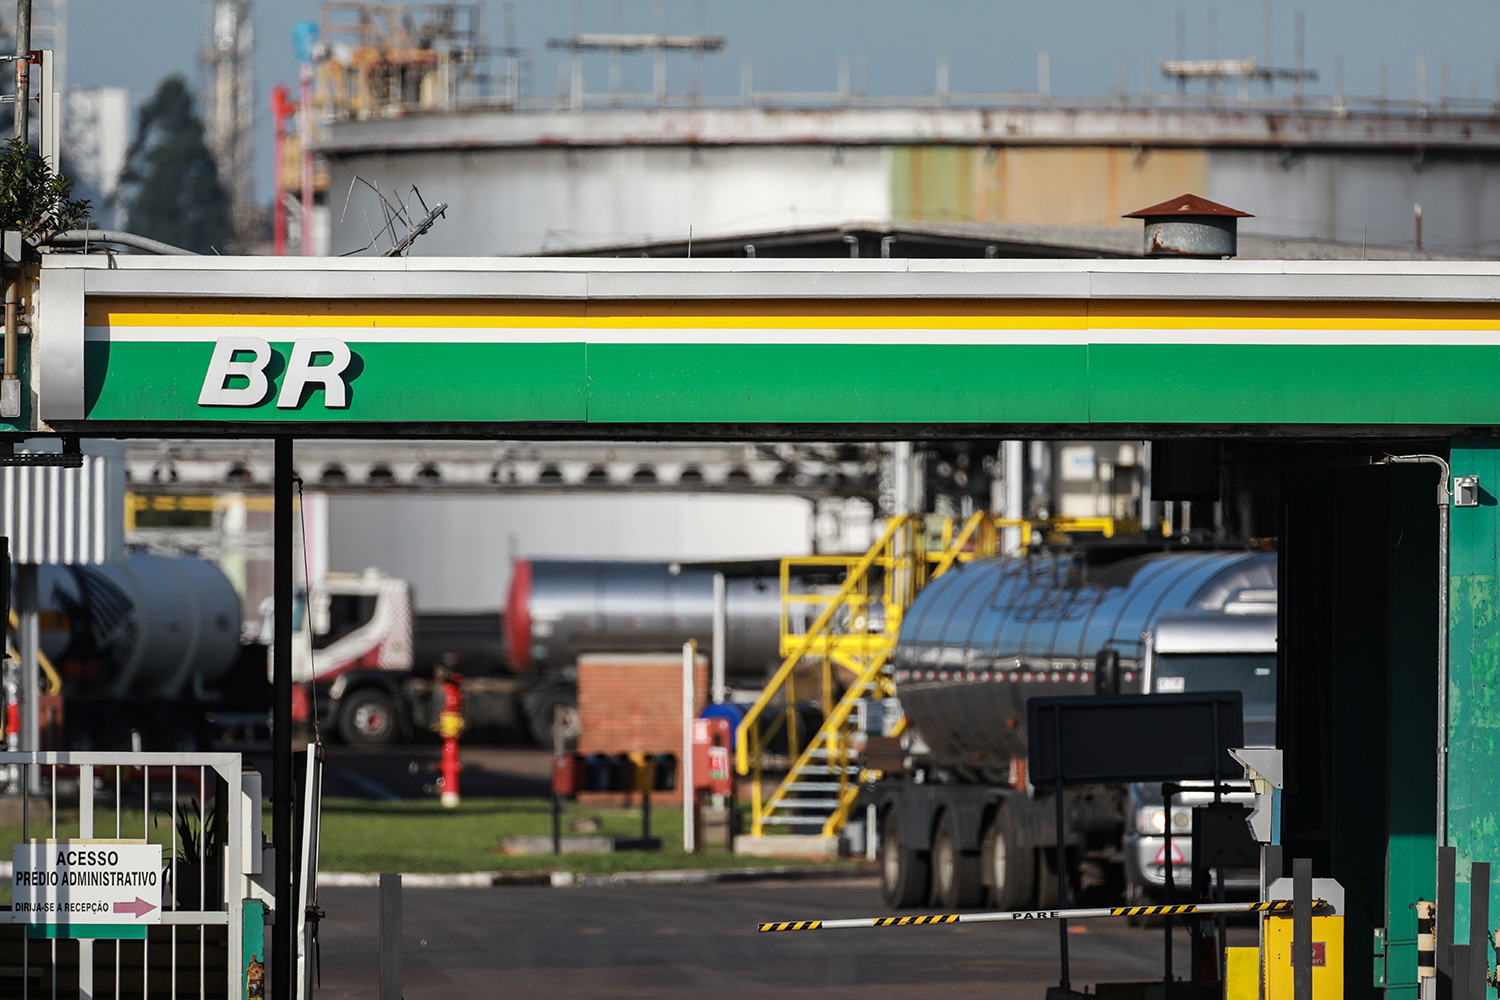 The entrance of the Petrobras Alberto Pasqualini Refinery is seen in Canoas, Brazil May 2, 2019. Picture taken May 2, 2019. REUTERS/Diego Vara